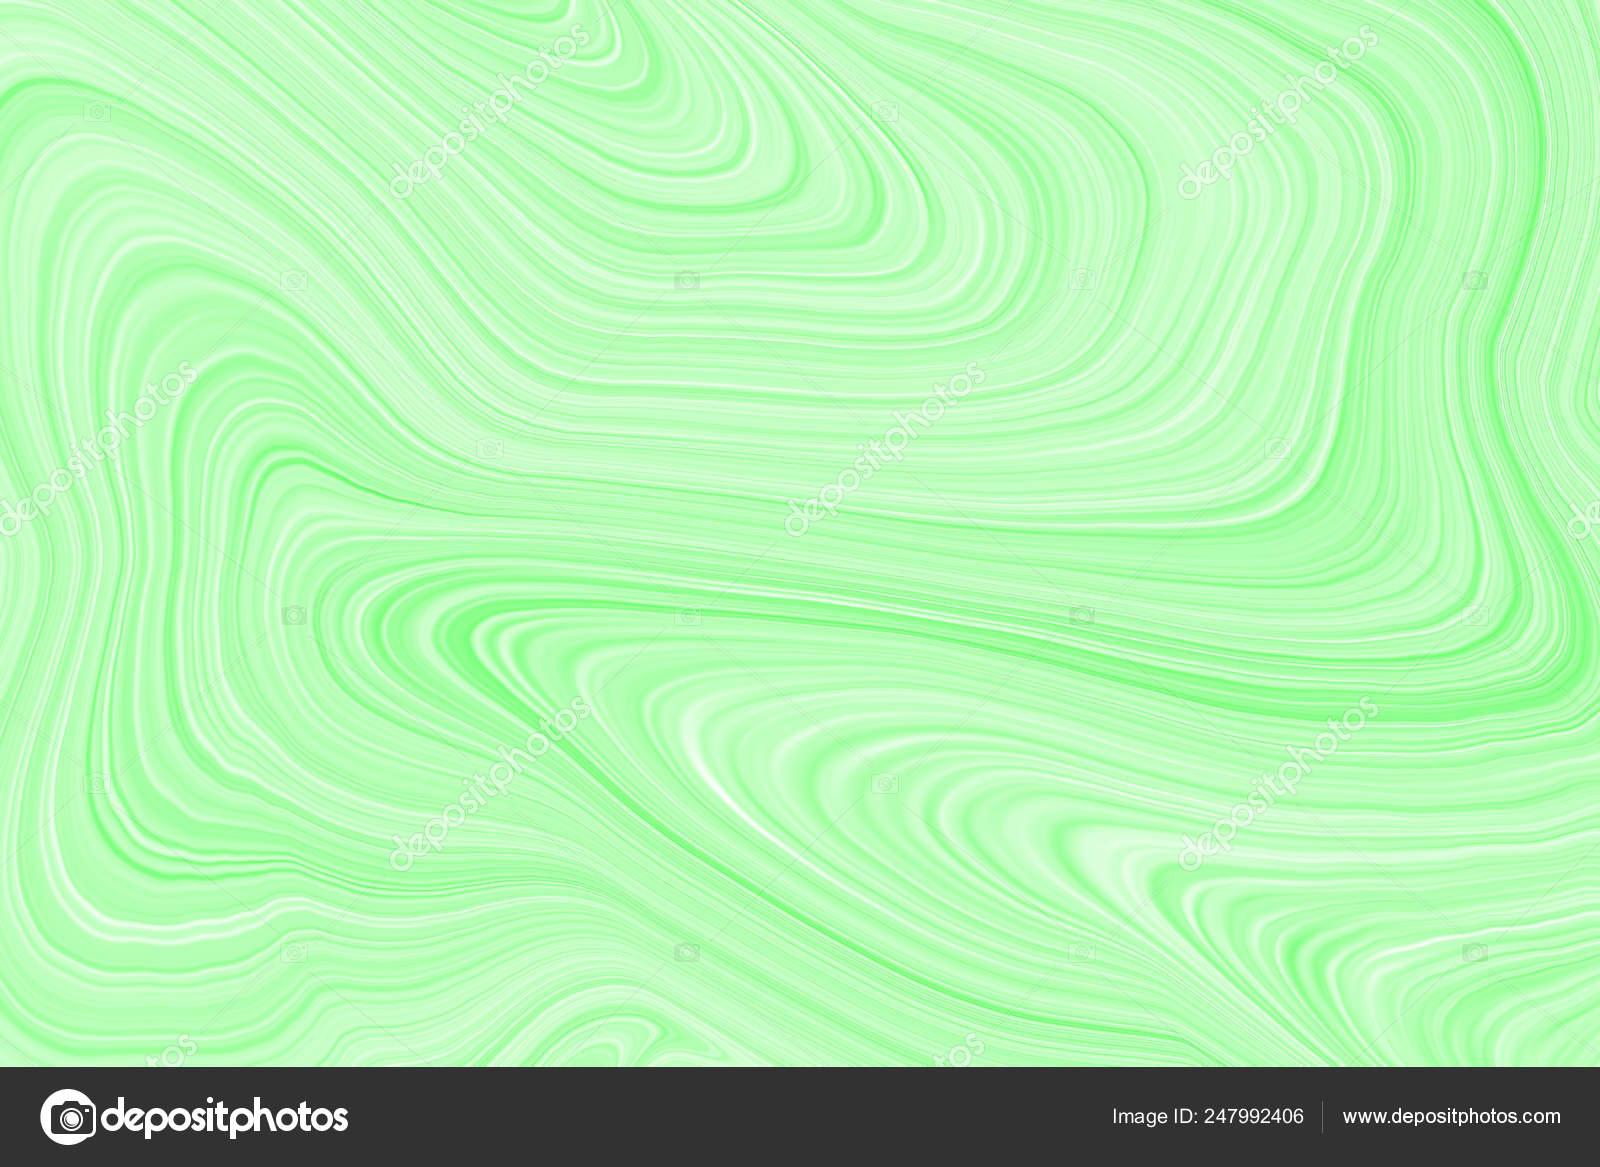 Light Green Marble Wallpaper Marble Light Green Color Effect Beautiful Background Wallpaper Texture Waves Stock Photo C Pakhomava Gmail Com 247992406